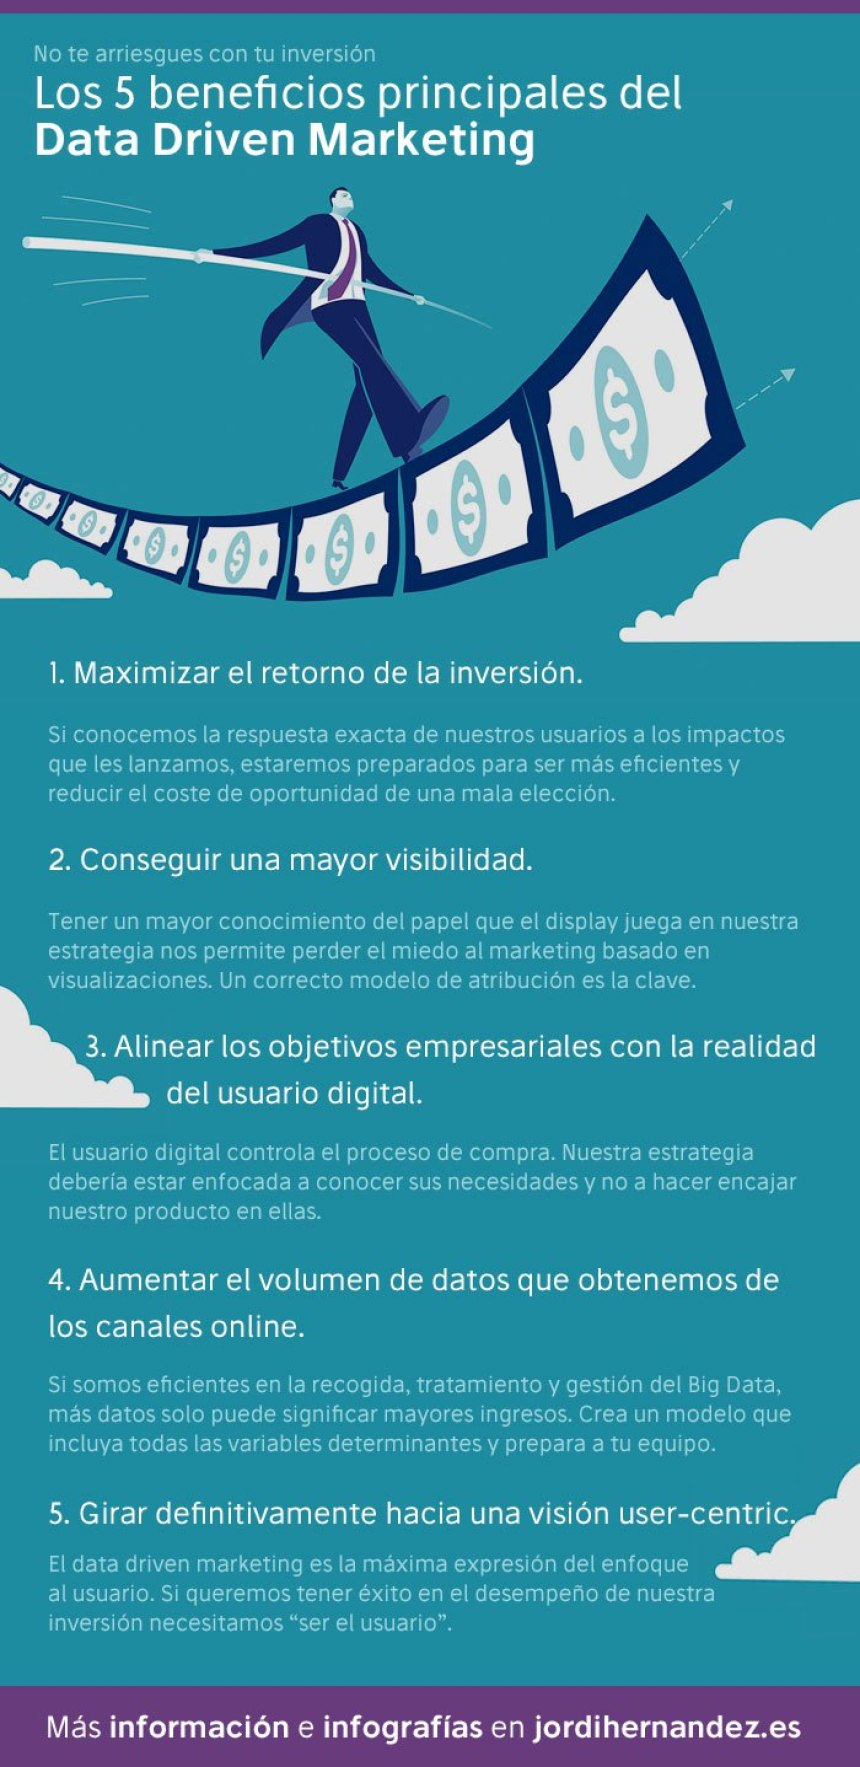 5 beneficios del Data Driven Marketing